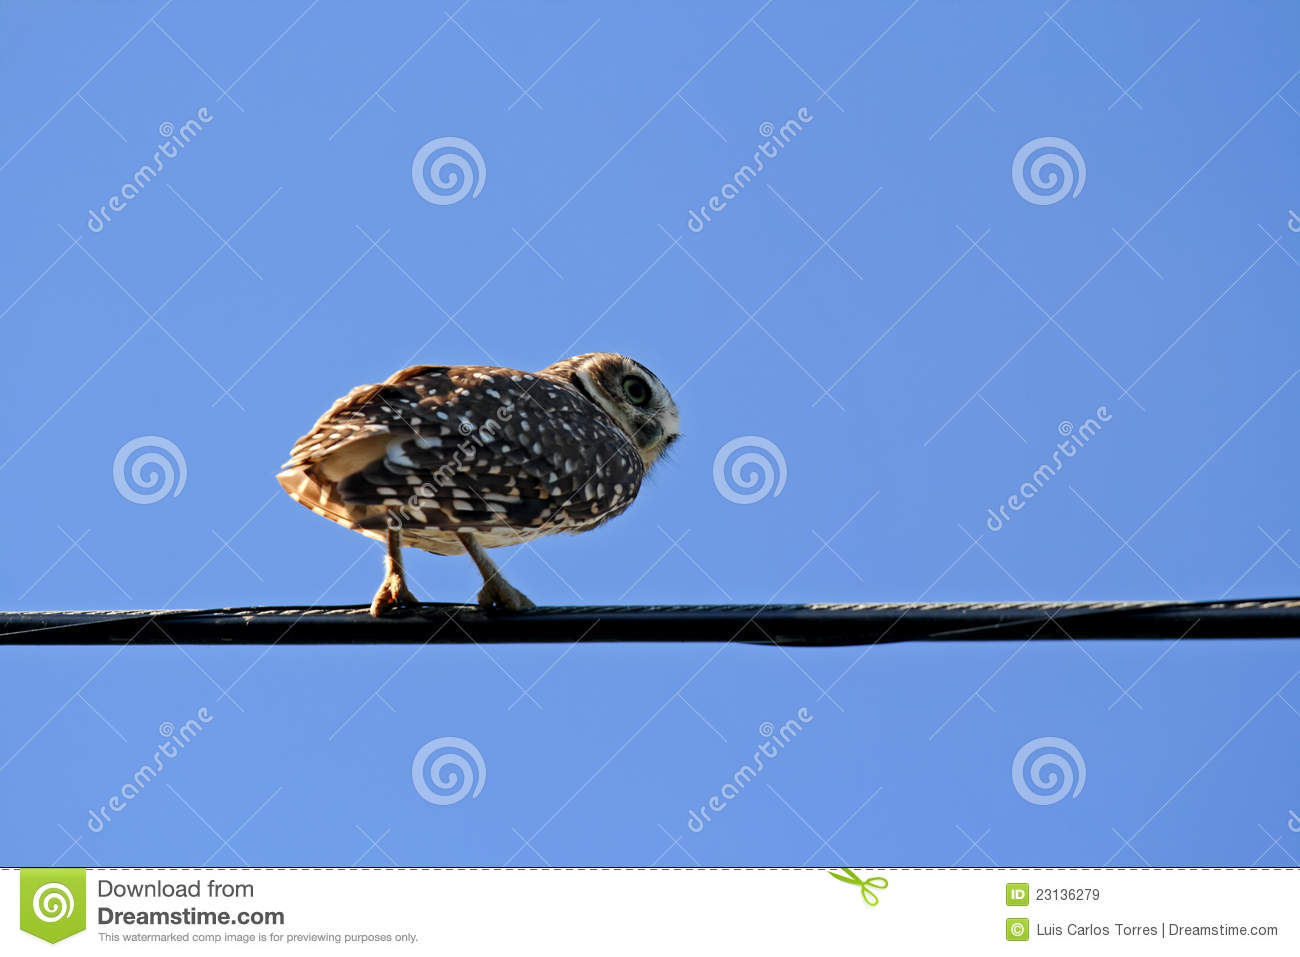 Owl on wire